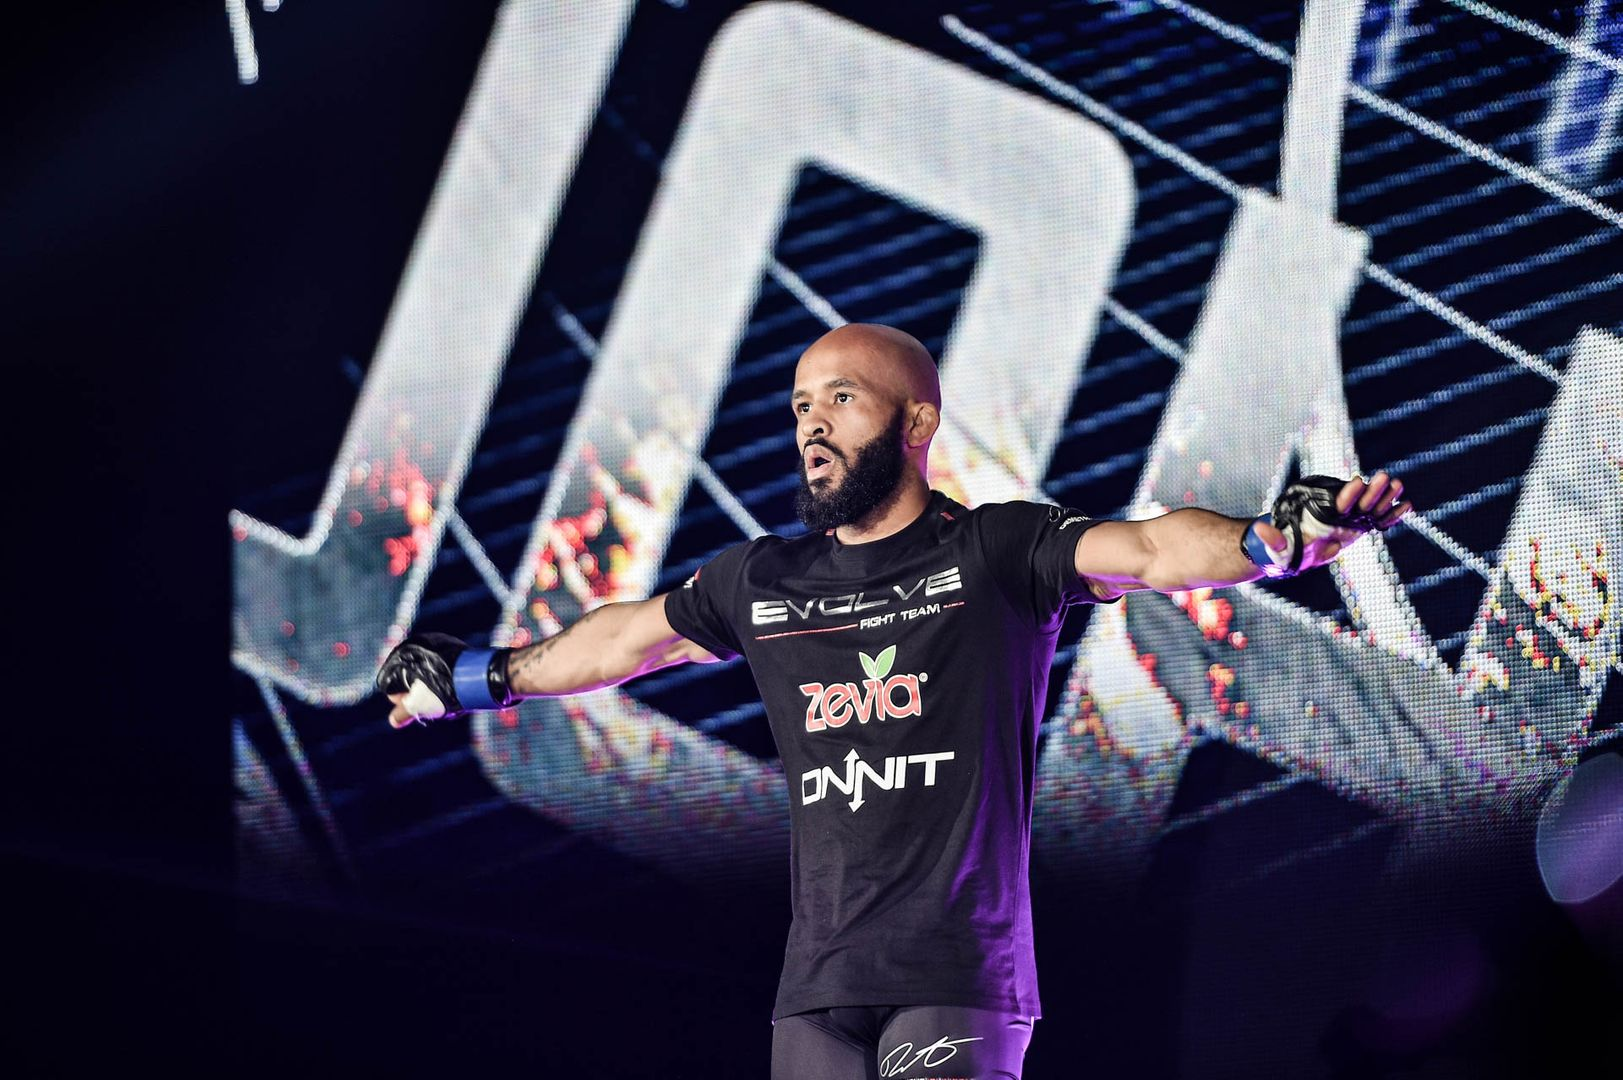 American superstar Demetrious Johnson walks to the Circle for his ONE debut